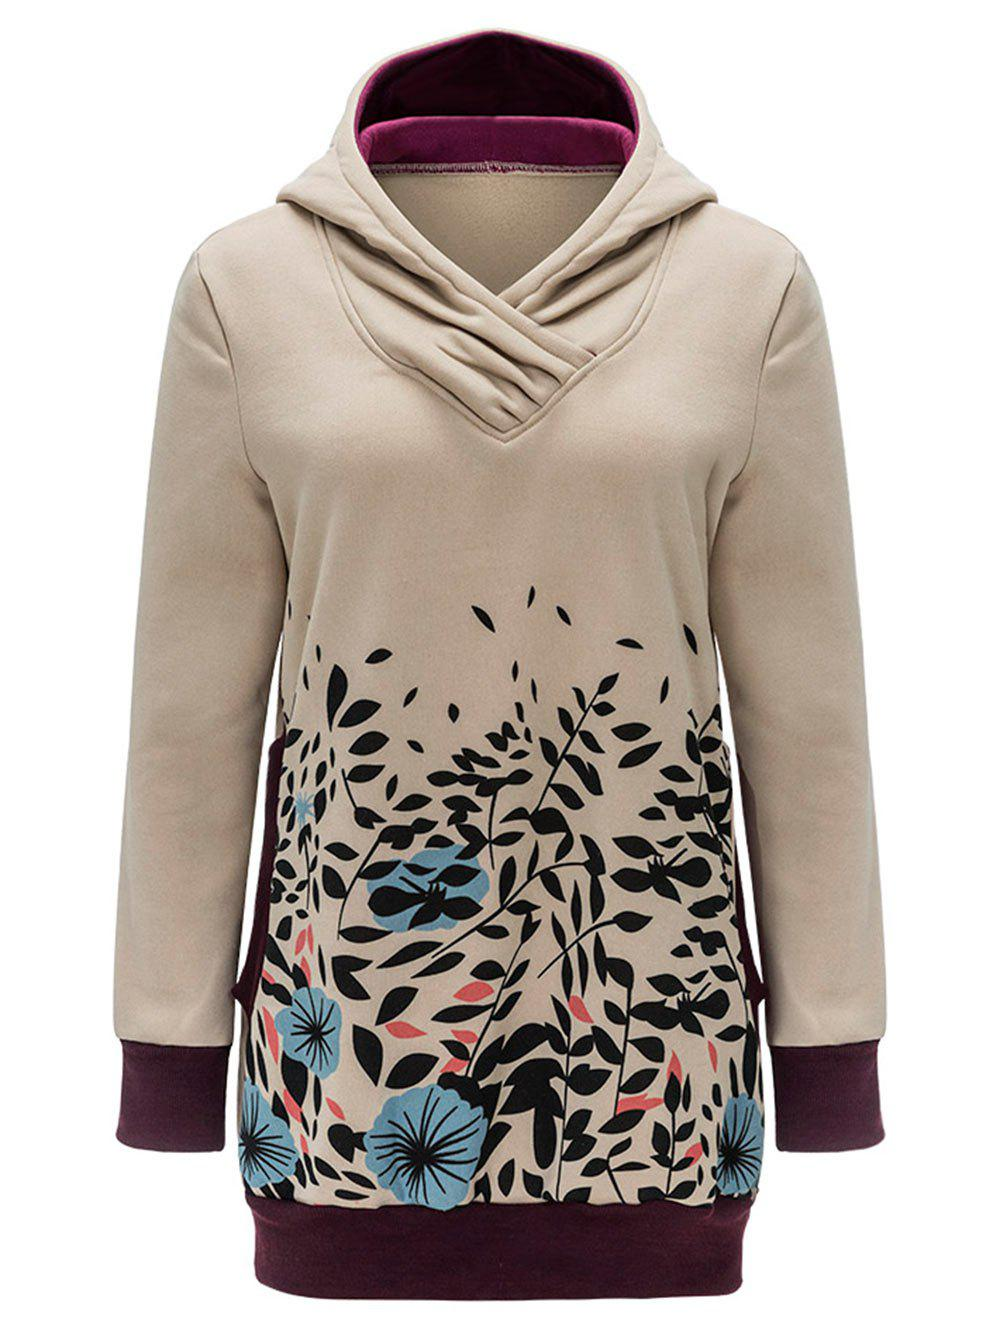 Affordable Floral and Leaves Print Tunic Hoodie